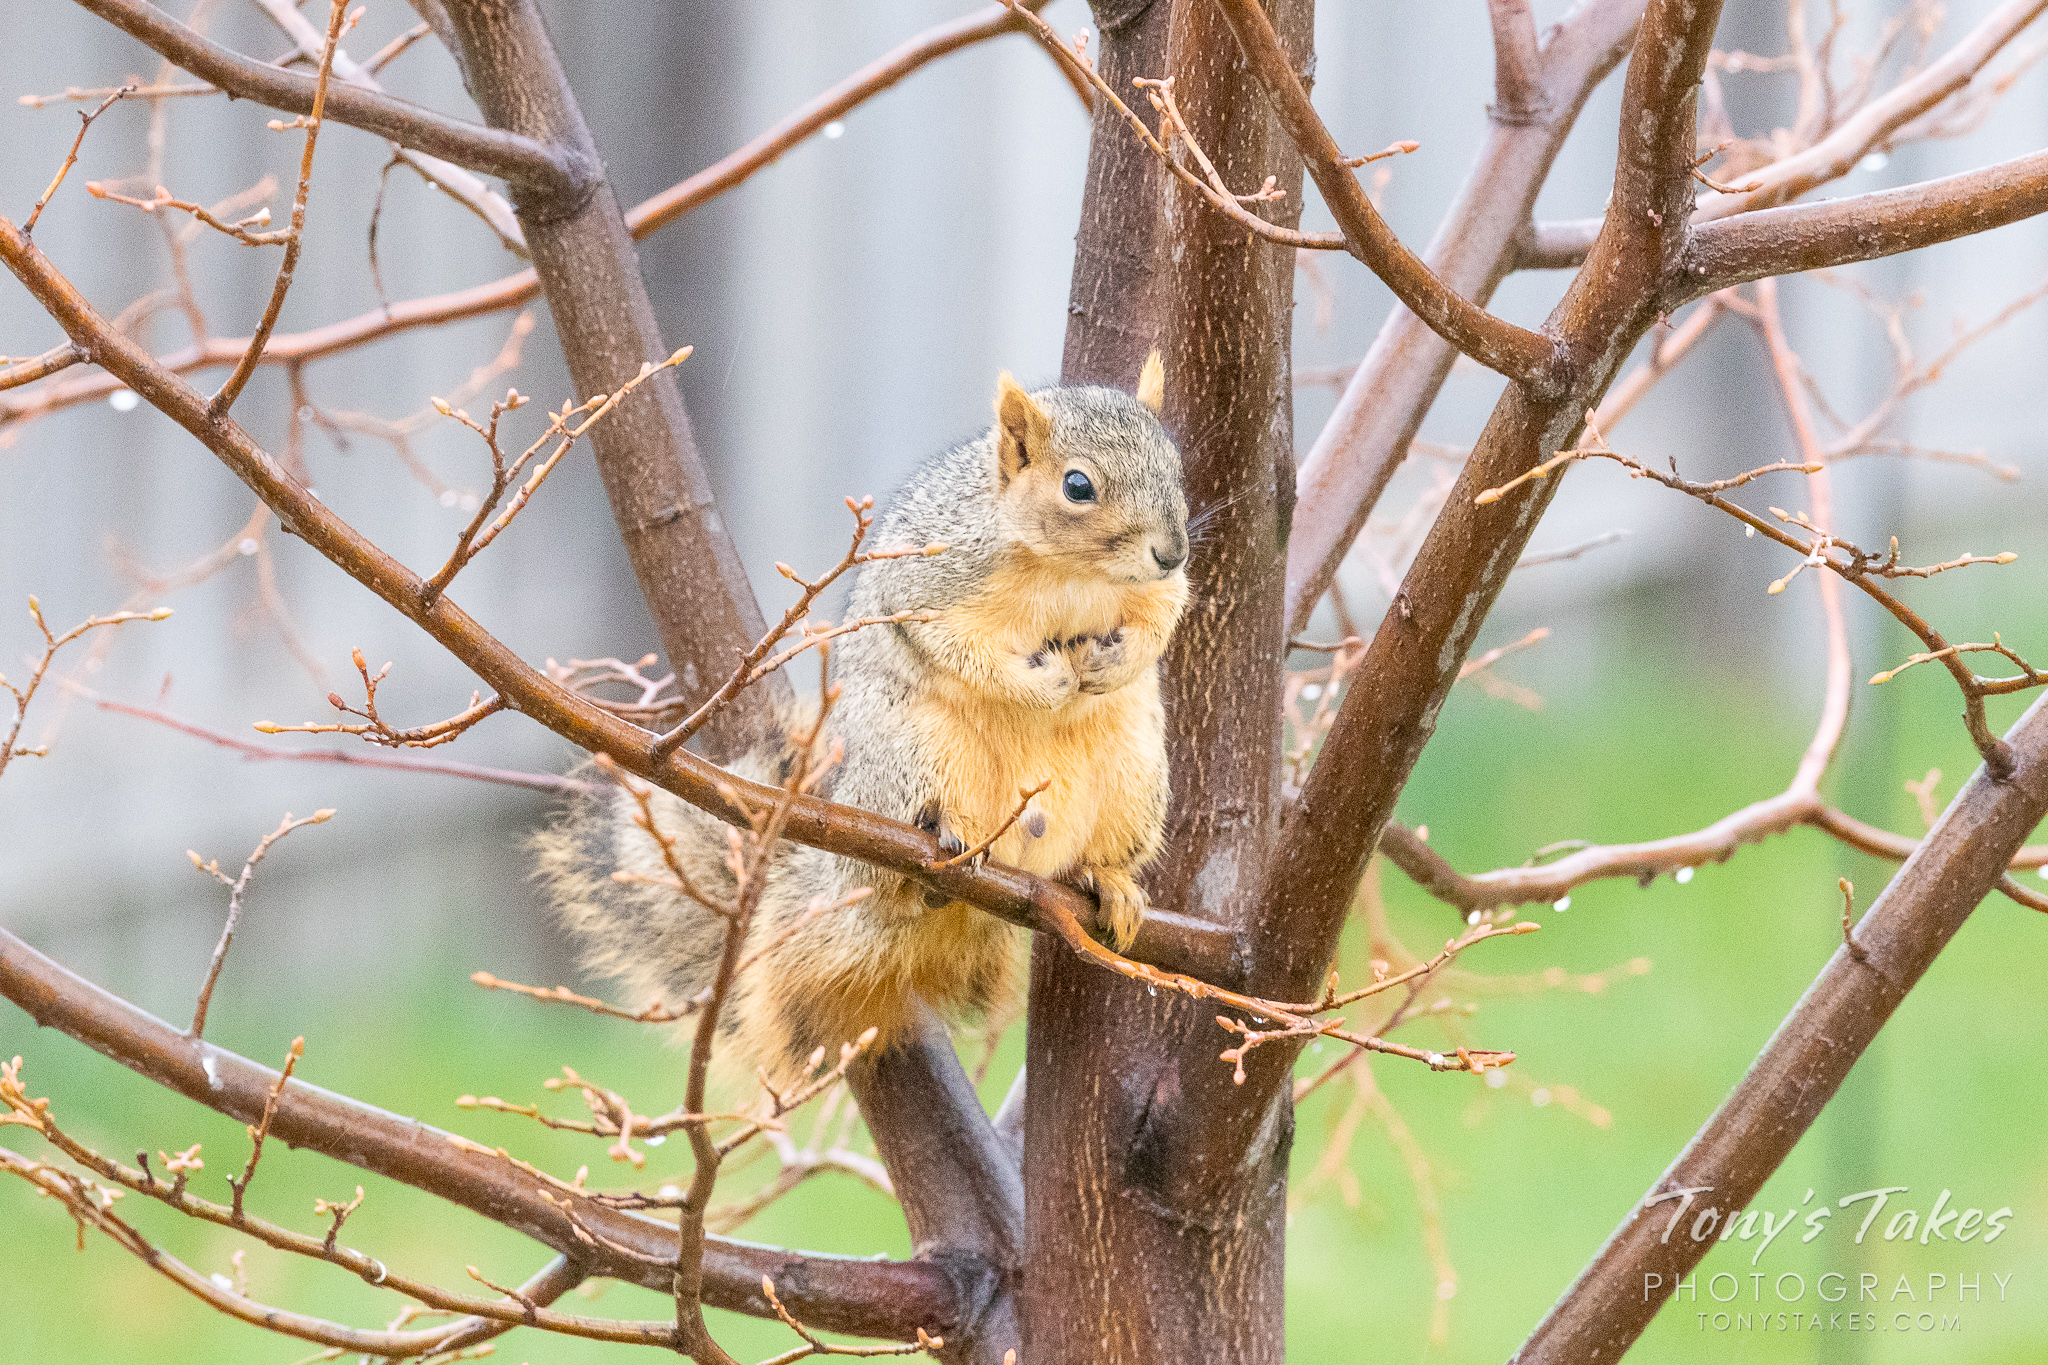 A squirrel hangs out in suburbia hoping to catch a treat falling from a bird feeder. (© Tony's Takes)